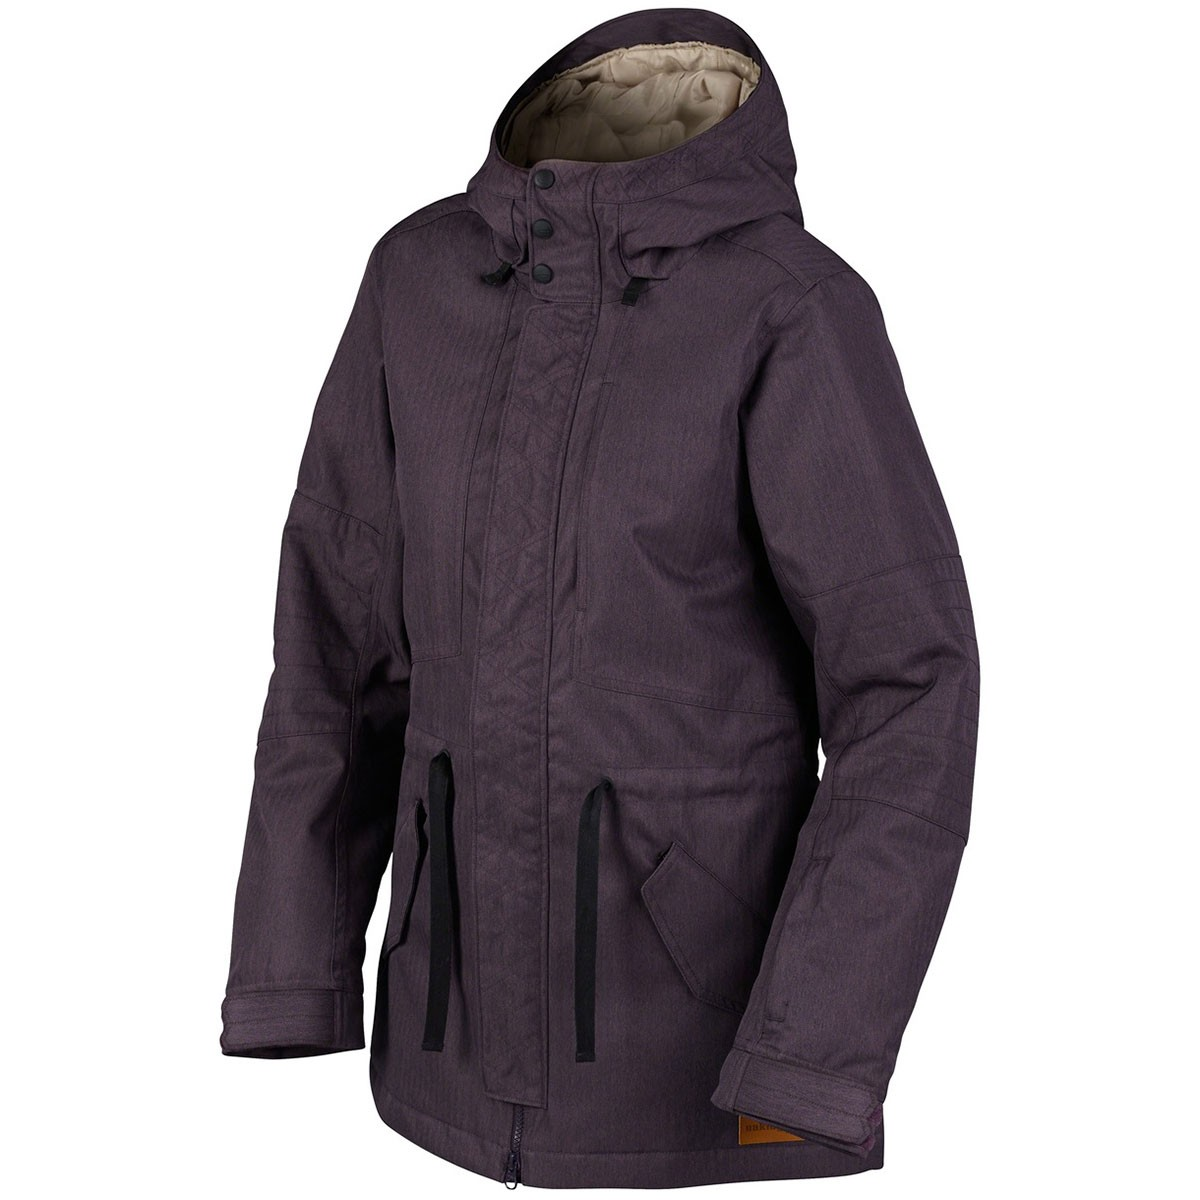 0606a3f44d Oakley Ascertain Insulated Jacket Review